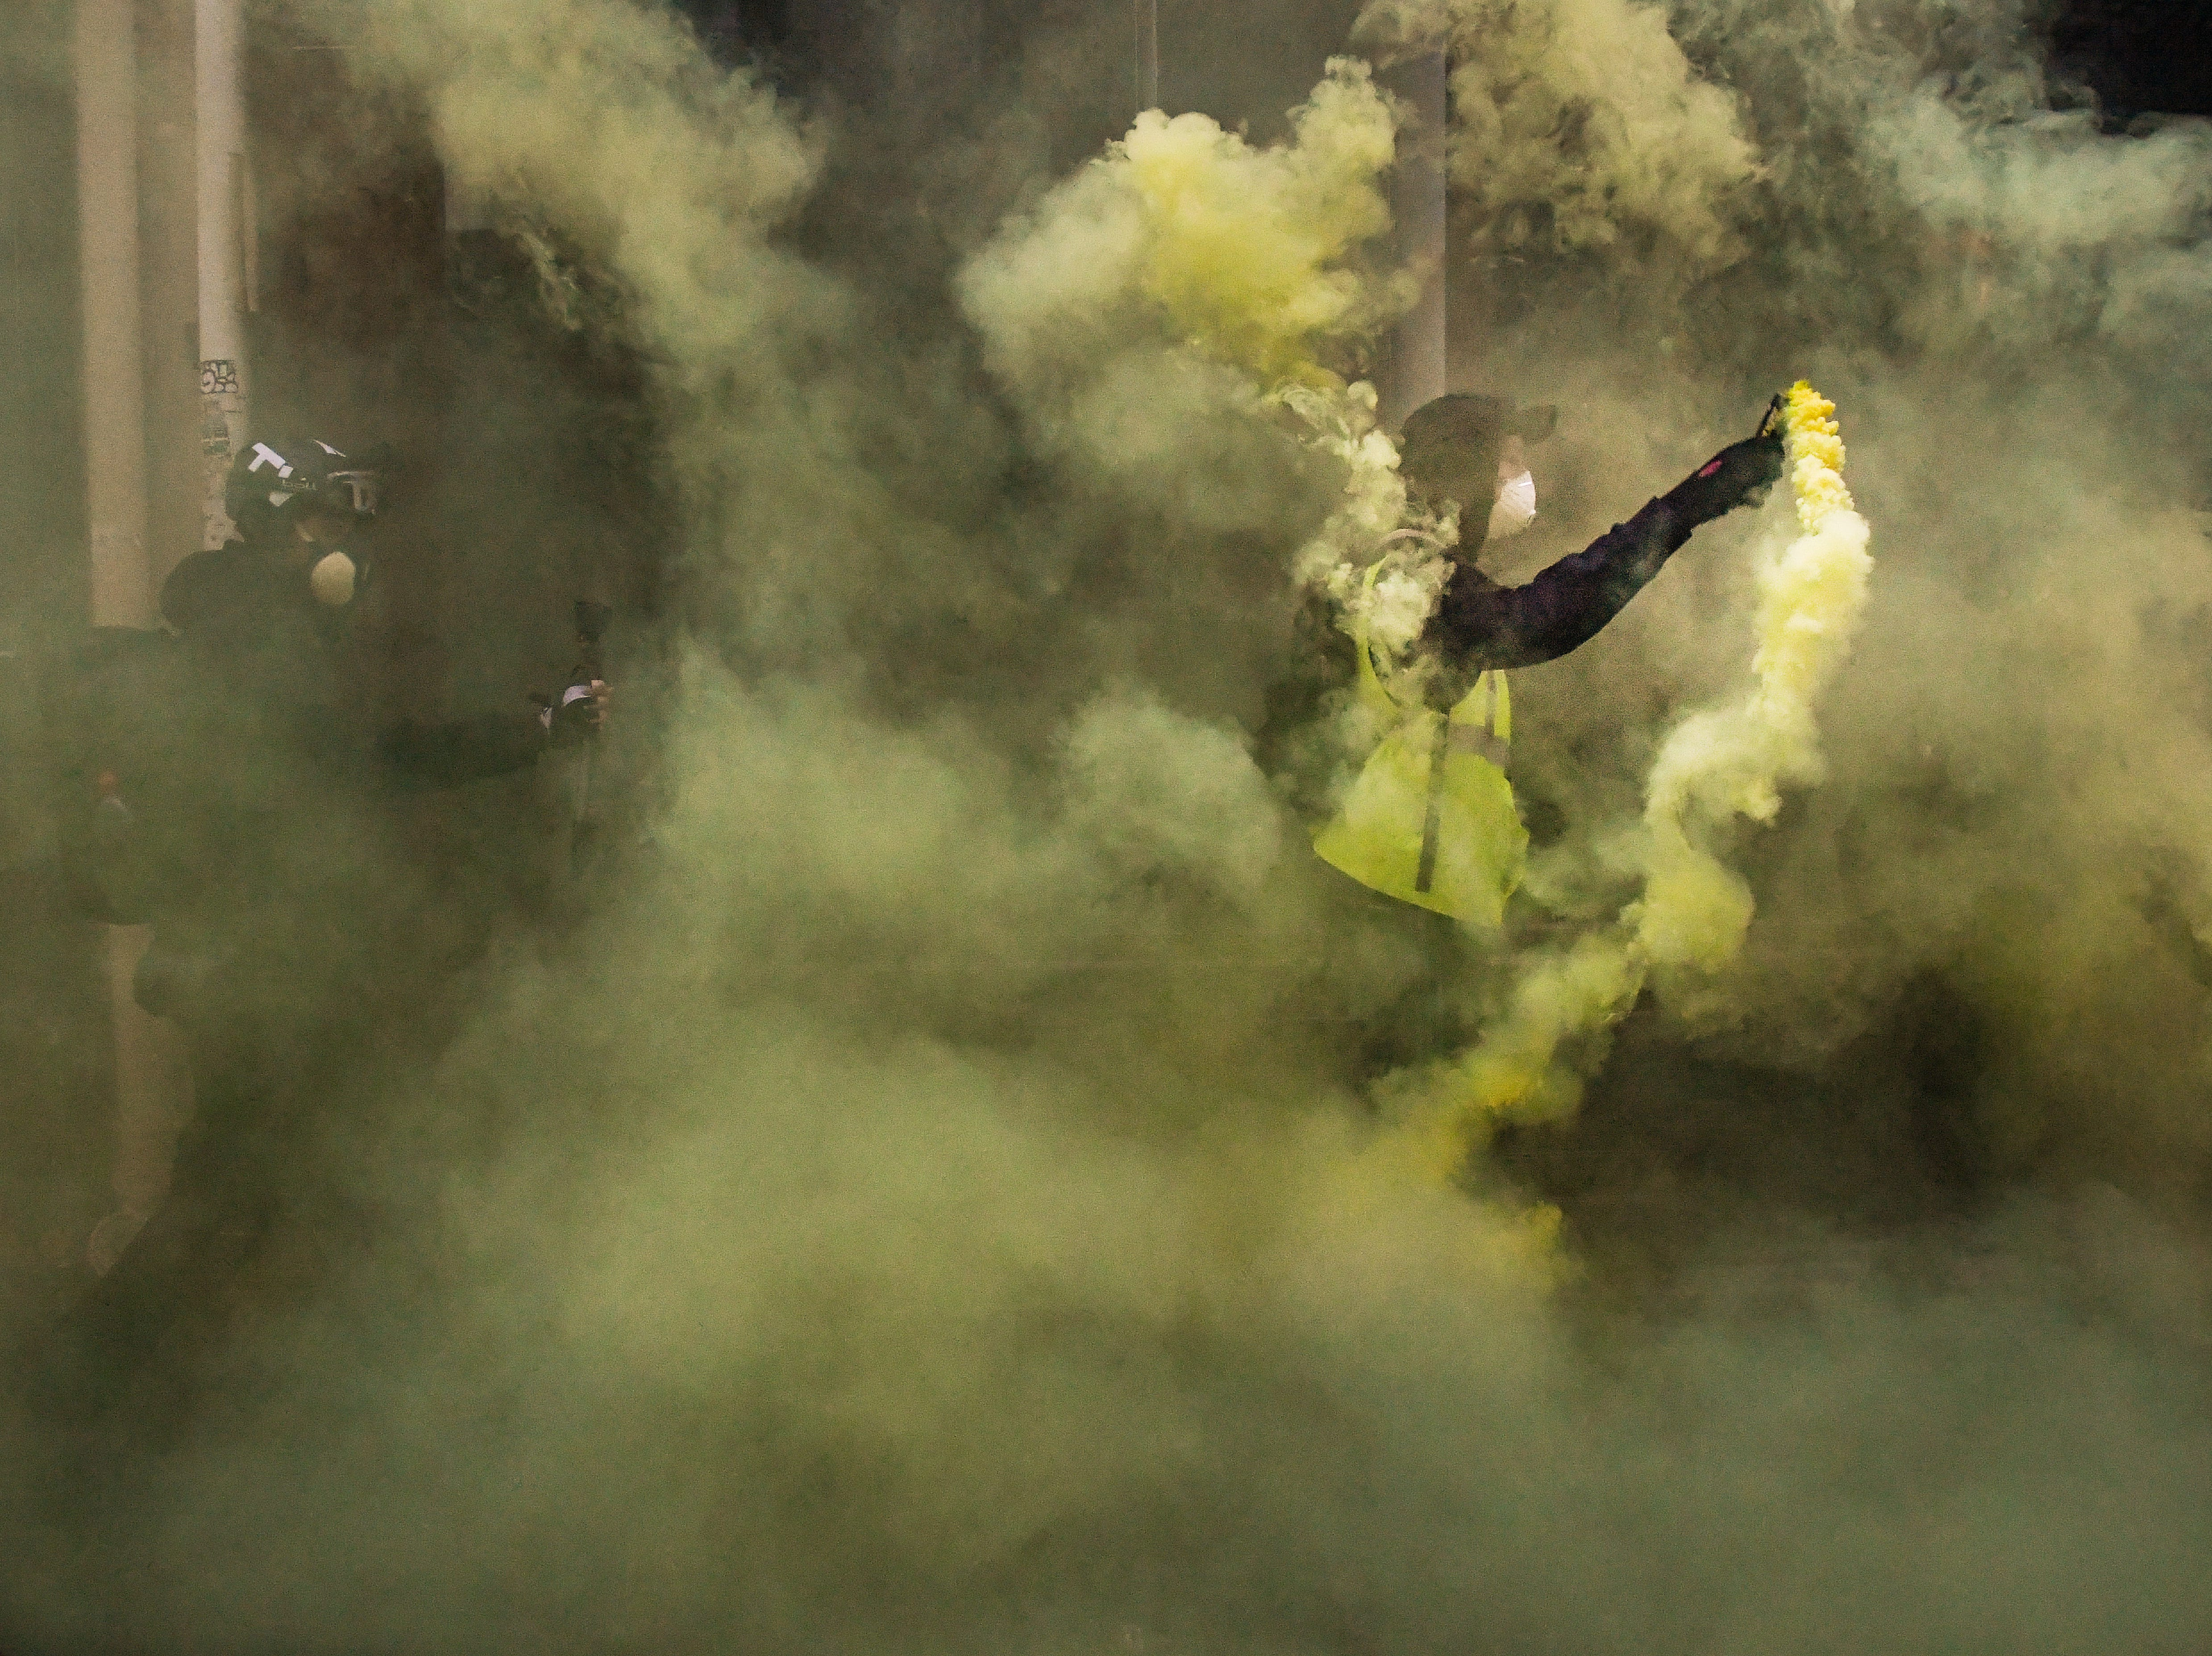 Protesters let off flares near Les Halles during the 'yellow vests' demonstration  on Dec. 15, 2018 in Paris, France. The protesters gathered in Paris for a 5th weekend despite President Emmanuel Macron's recent attempts at policy concessions, such as a rise in the minimum wage and cancellation of new fuel taxes. But the 'Yellow Vest' movement, which has attracted malcontents from across France's political spectrum, has shown little sign of slowing down.